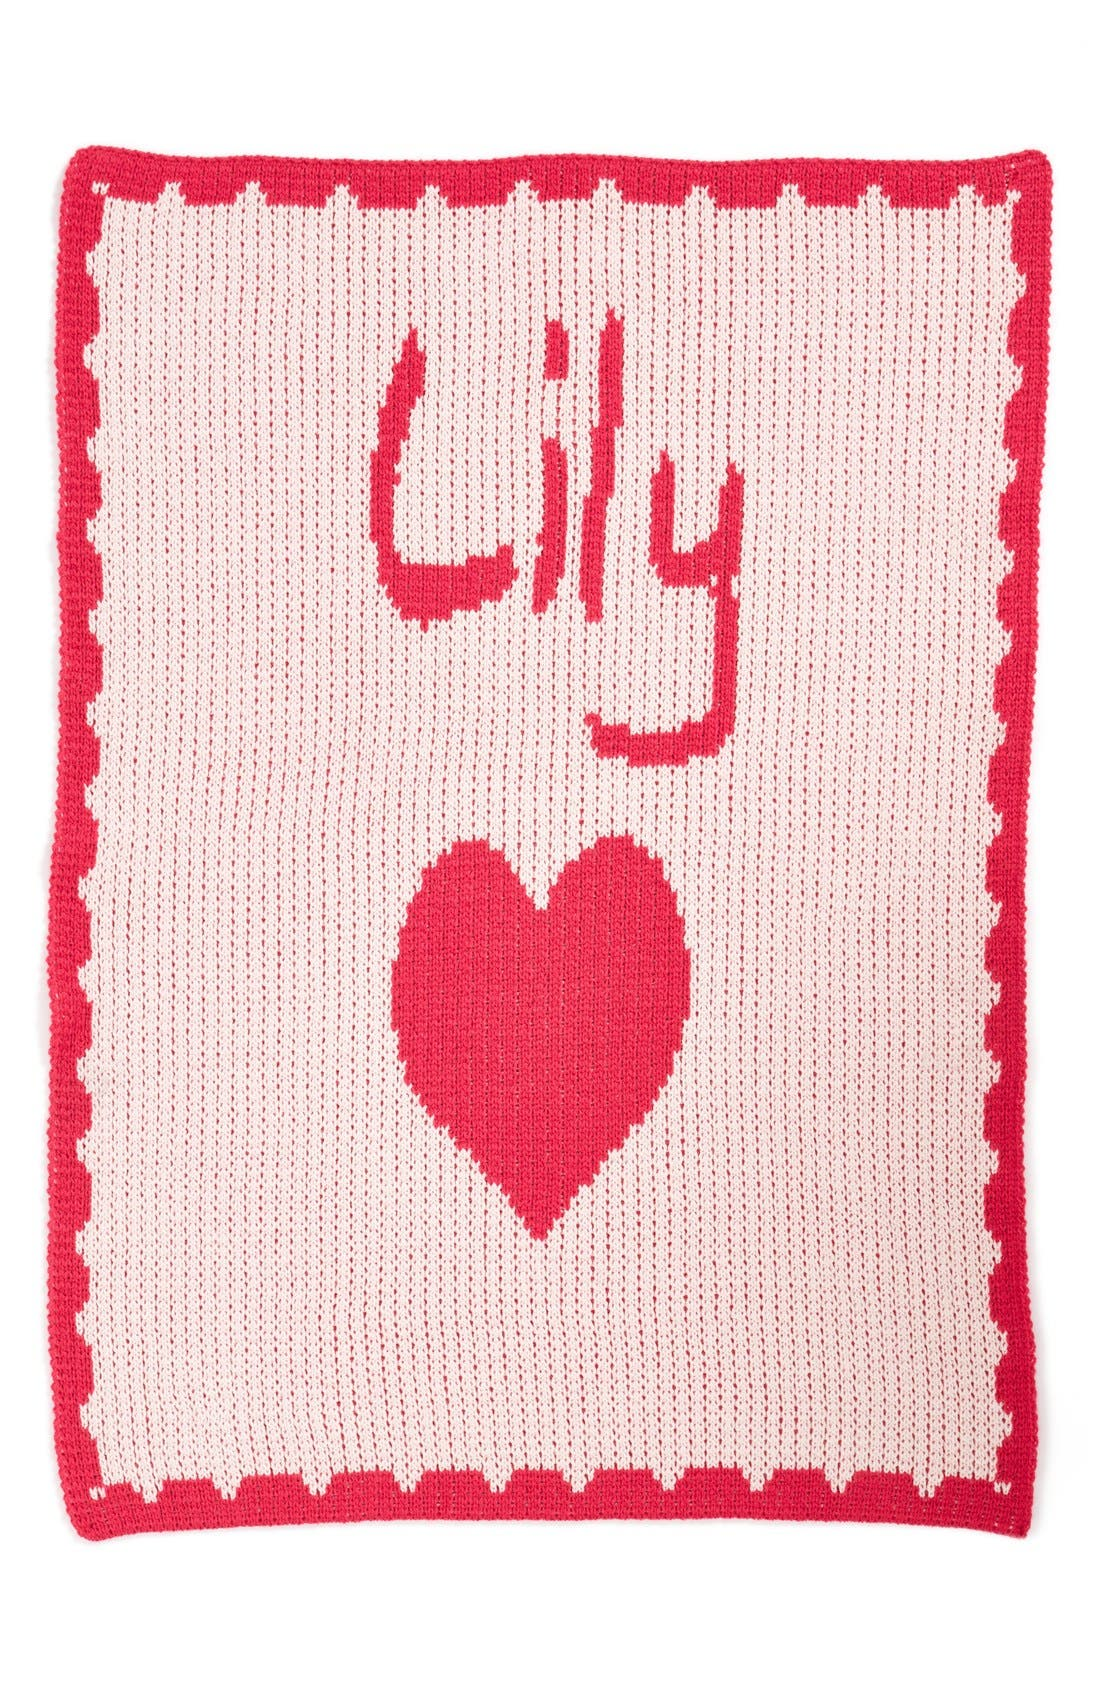 'Heart' Personalized Crib Blanket,                             Main thumbnail 1, color,                             PALE PINK/ FUCHSIA